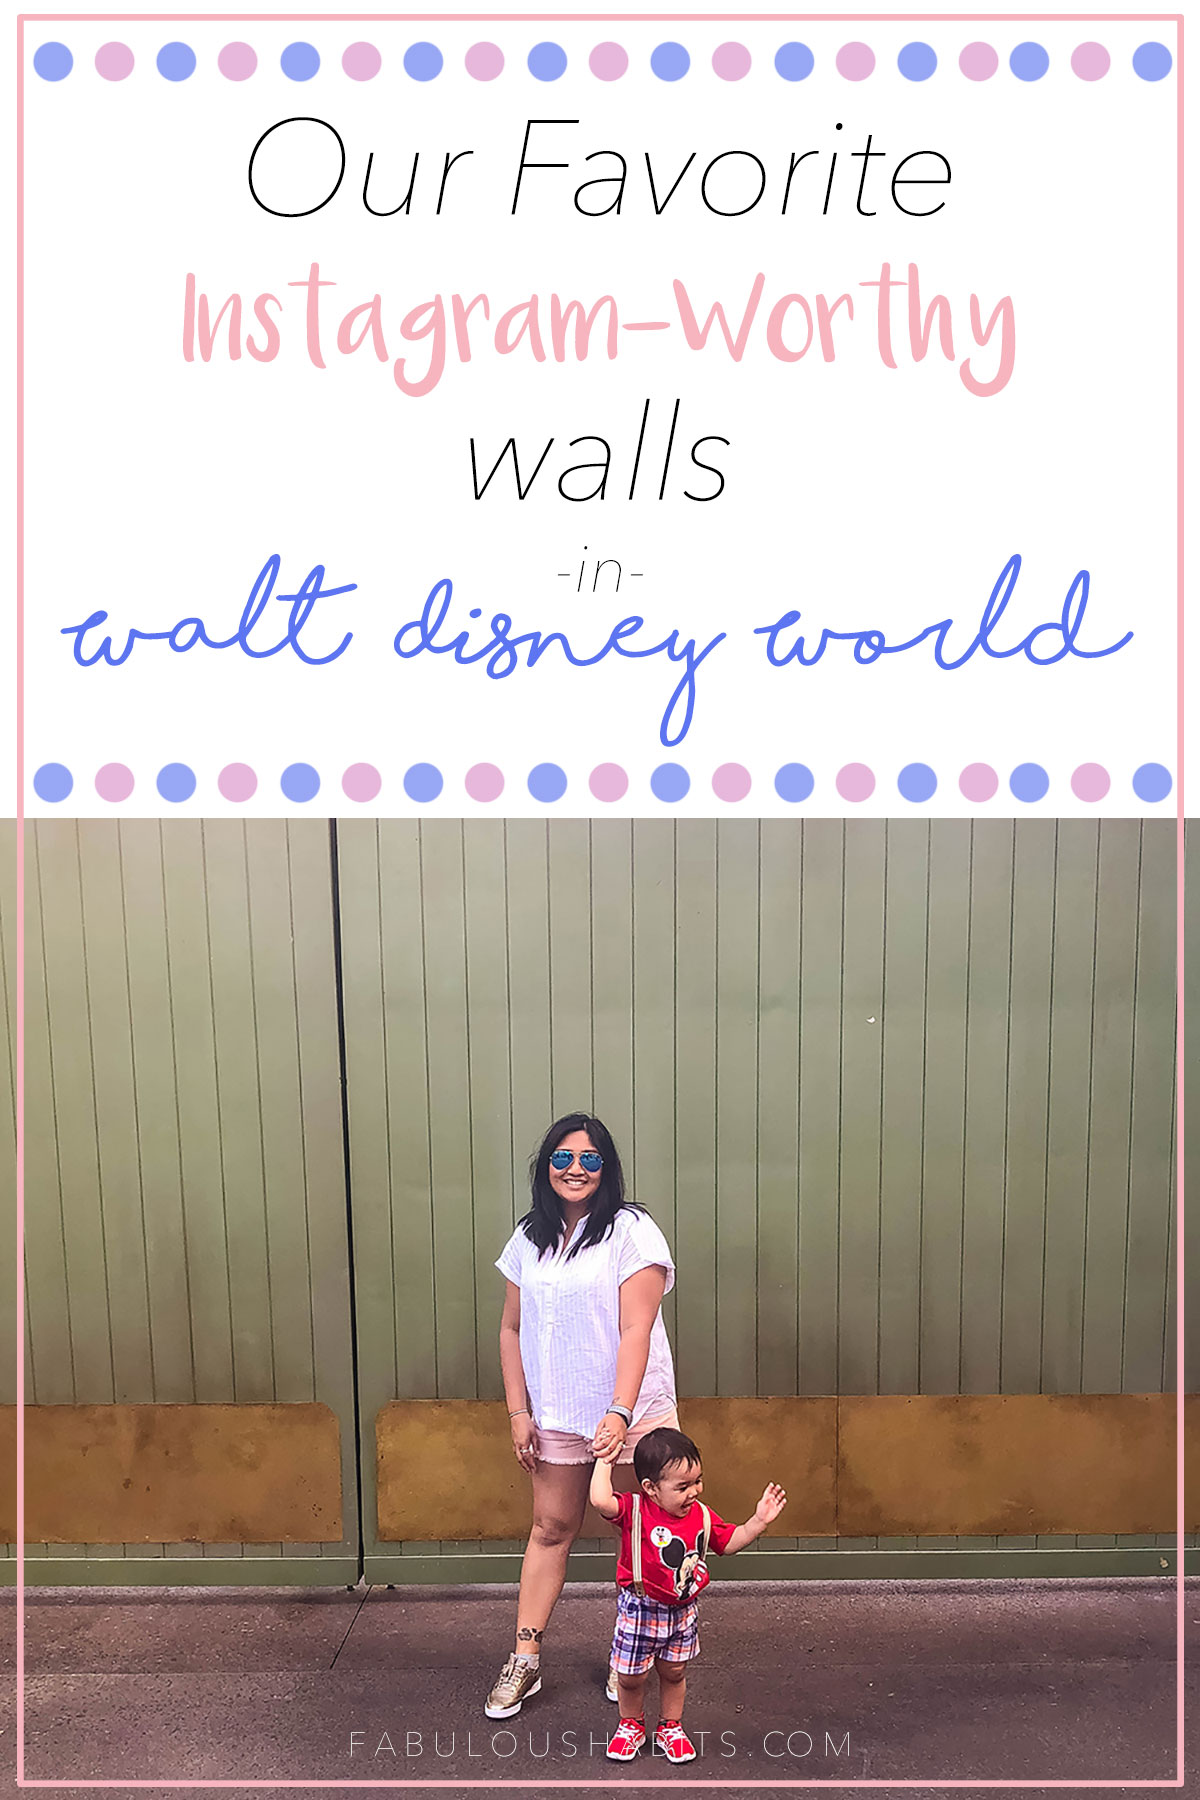 Our family's favorite Instagram-worthy walls in Walt Disney World. We'll tell you exactly where! Follow along so you can get your next best photo op! #disneyvacations